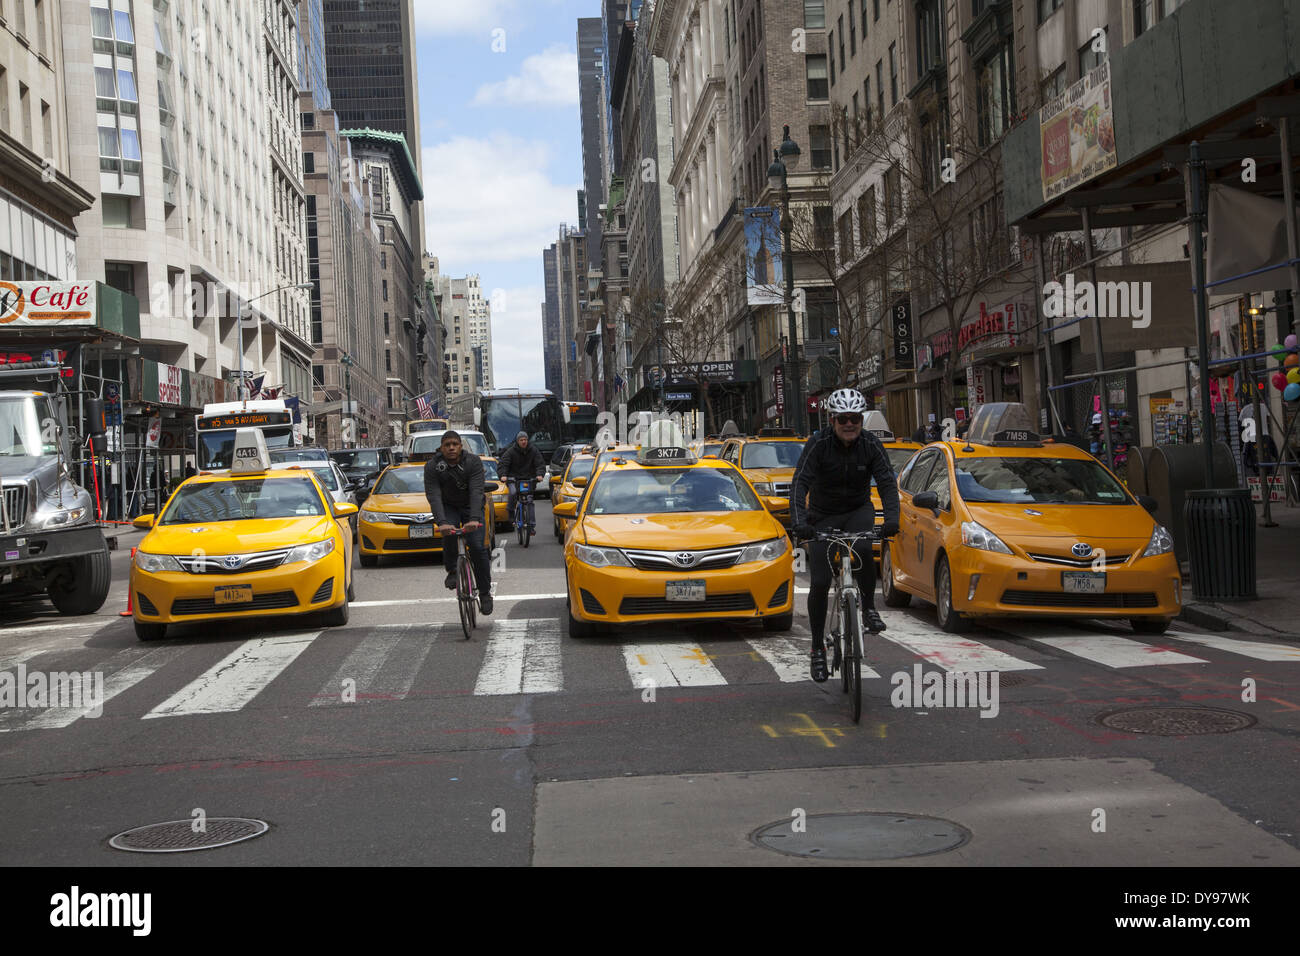 Looking north up 5th Avenue thru a sea of cabs from 35th St. in Manhattan, new York City - Stock Image